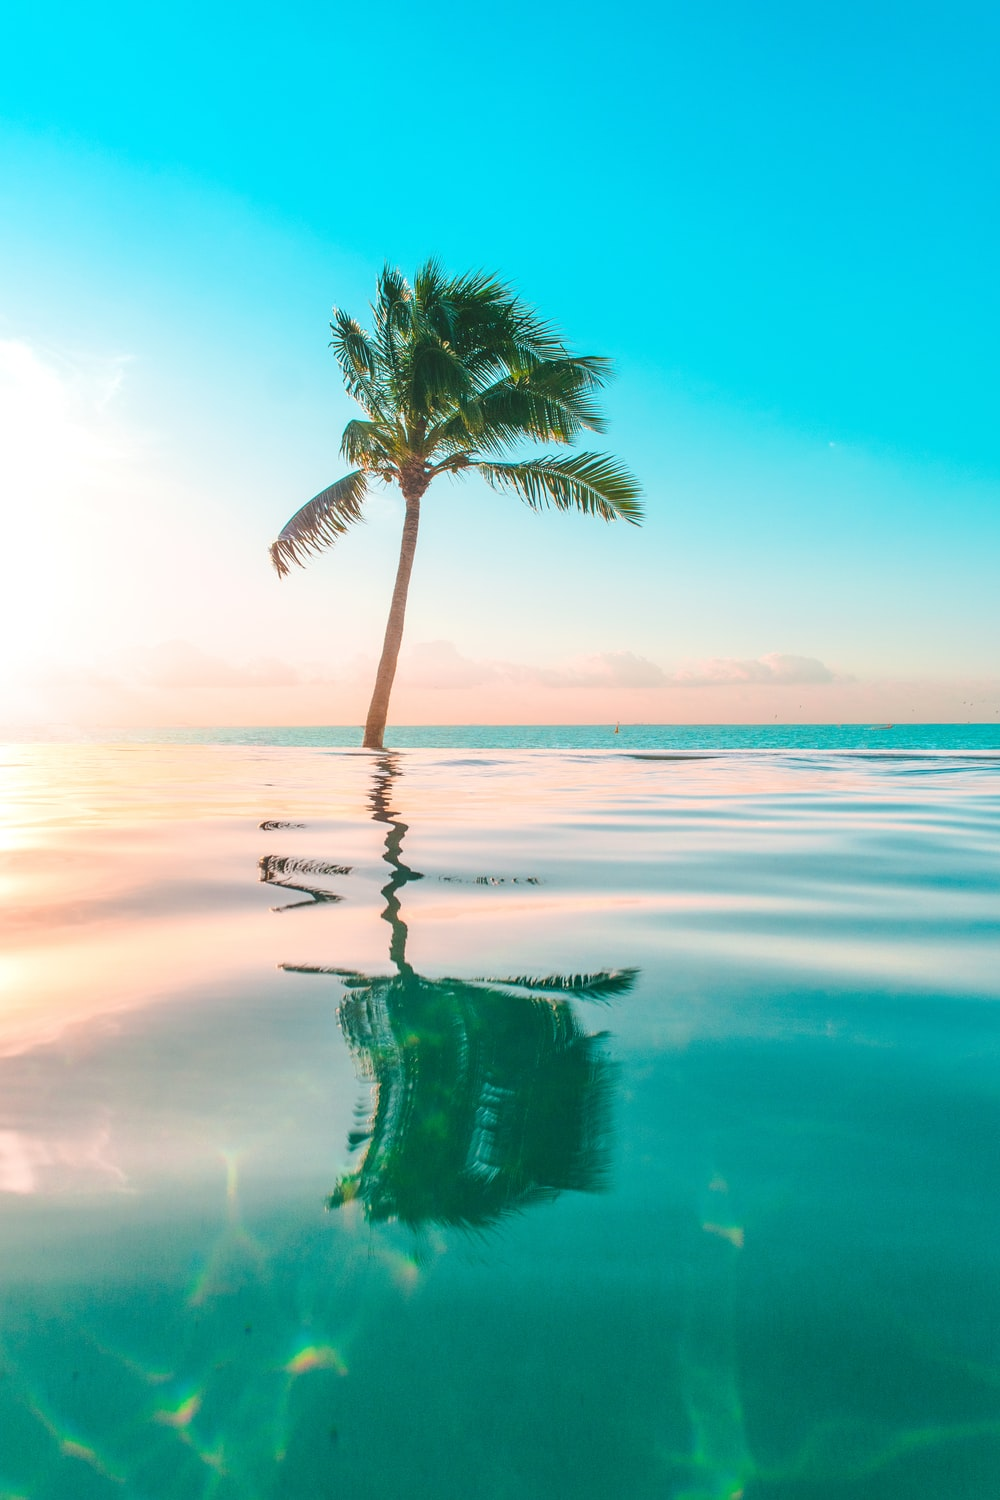 Tropical Wallpapers Free Hd Download 500 Hq Unsplash Download this free vector about tropical neon lettering with leaves background, and discover more than 10 million professional graphic resources on freepik. tropical wallpapers free hd download